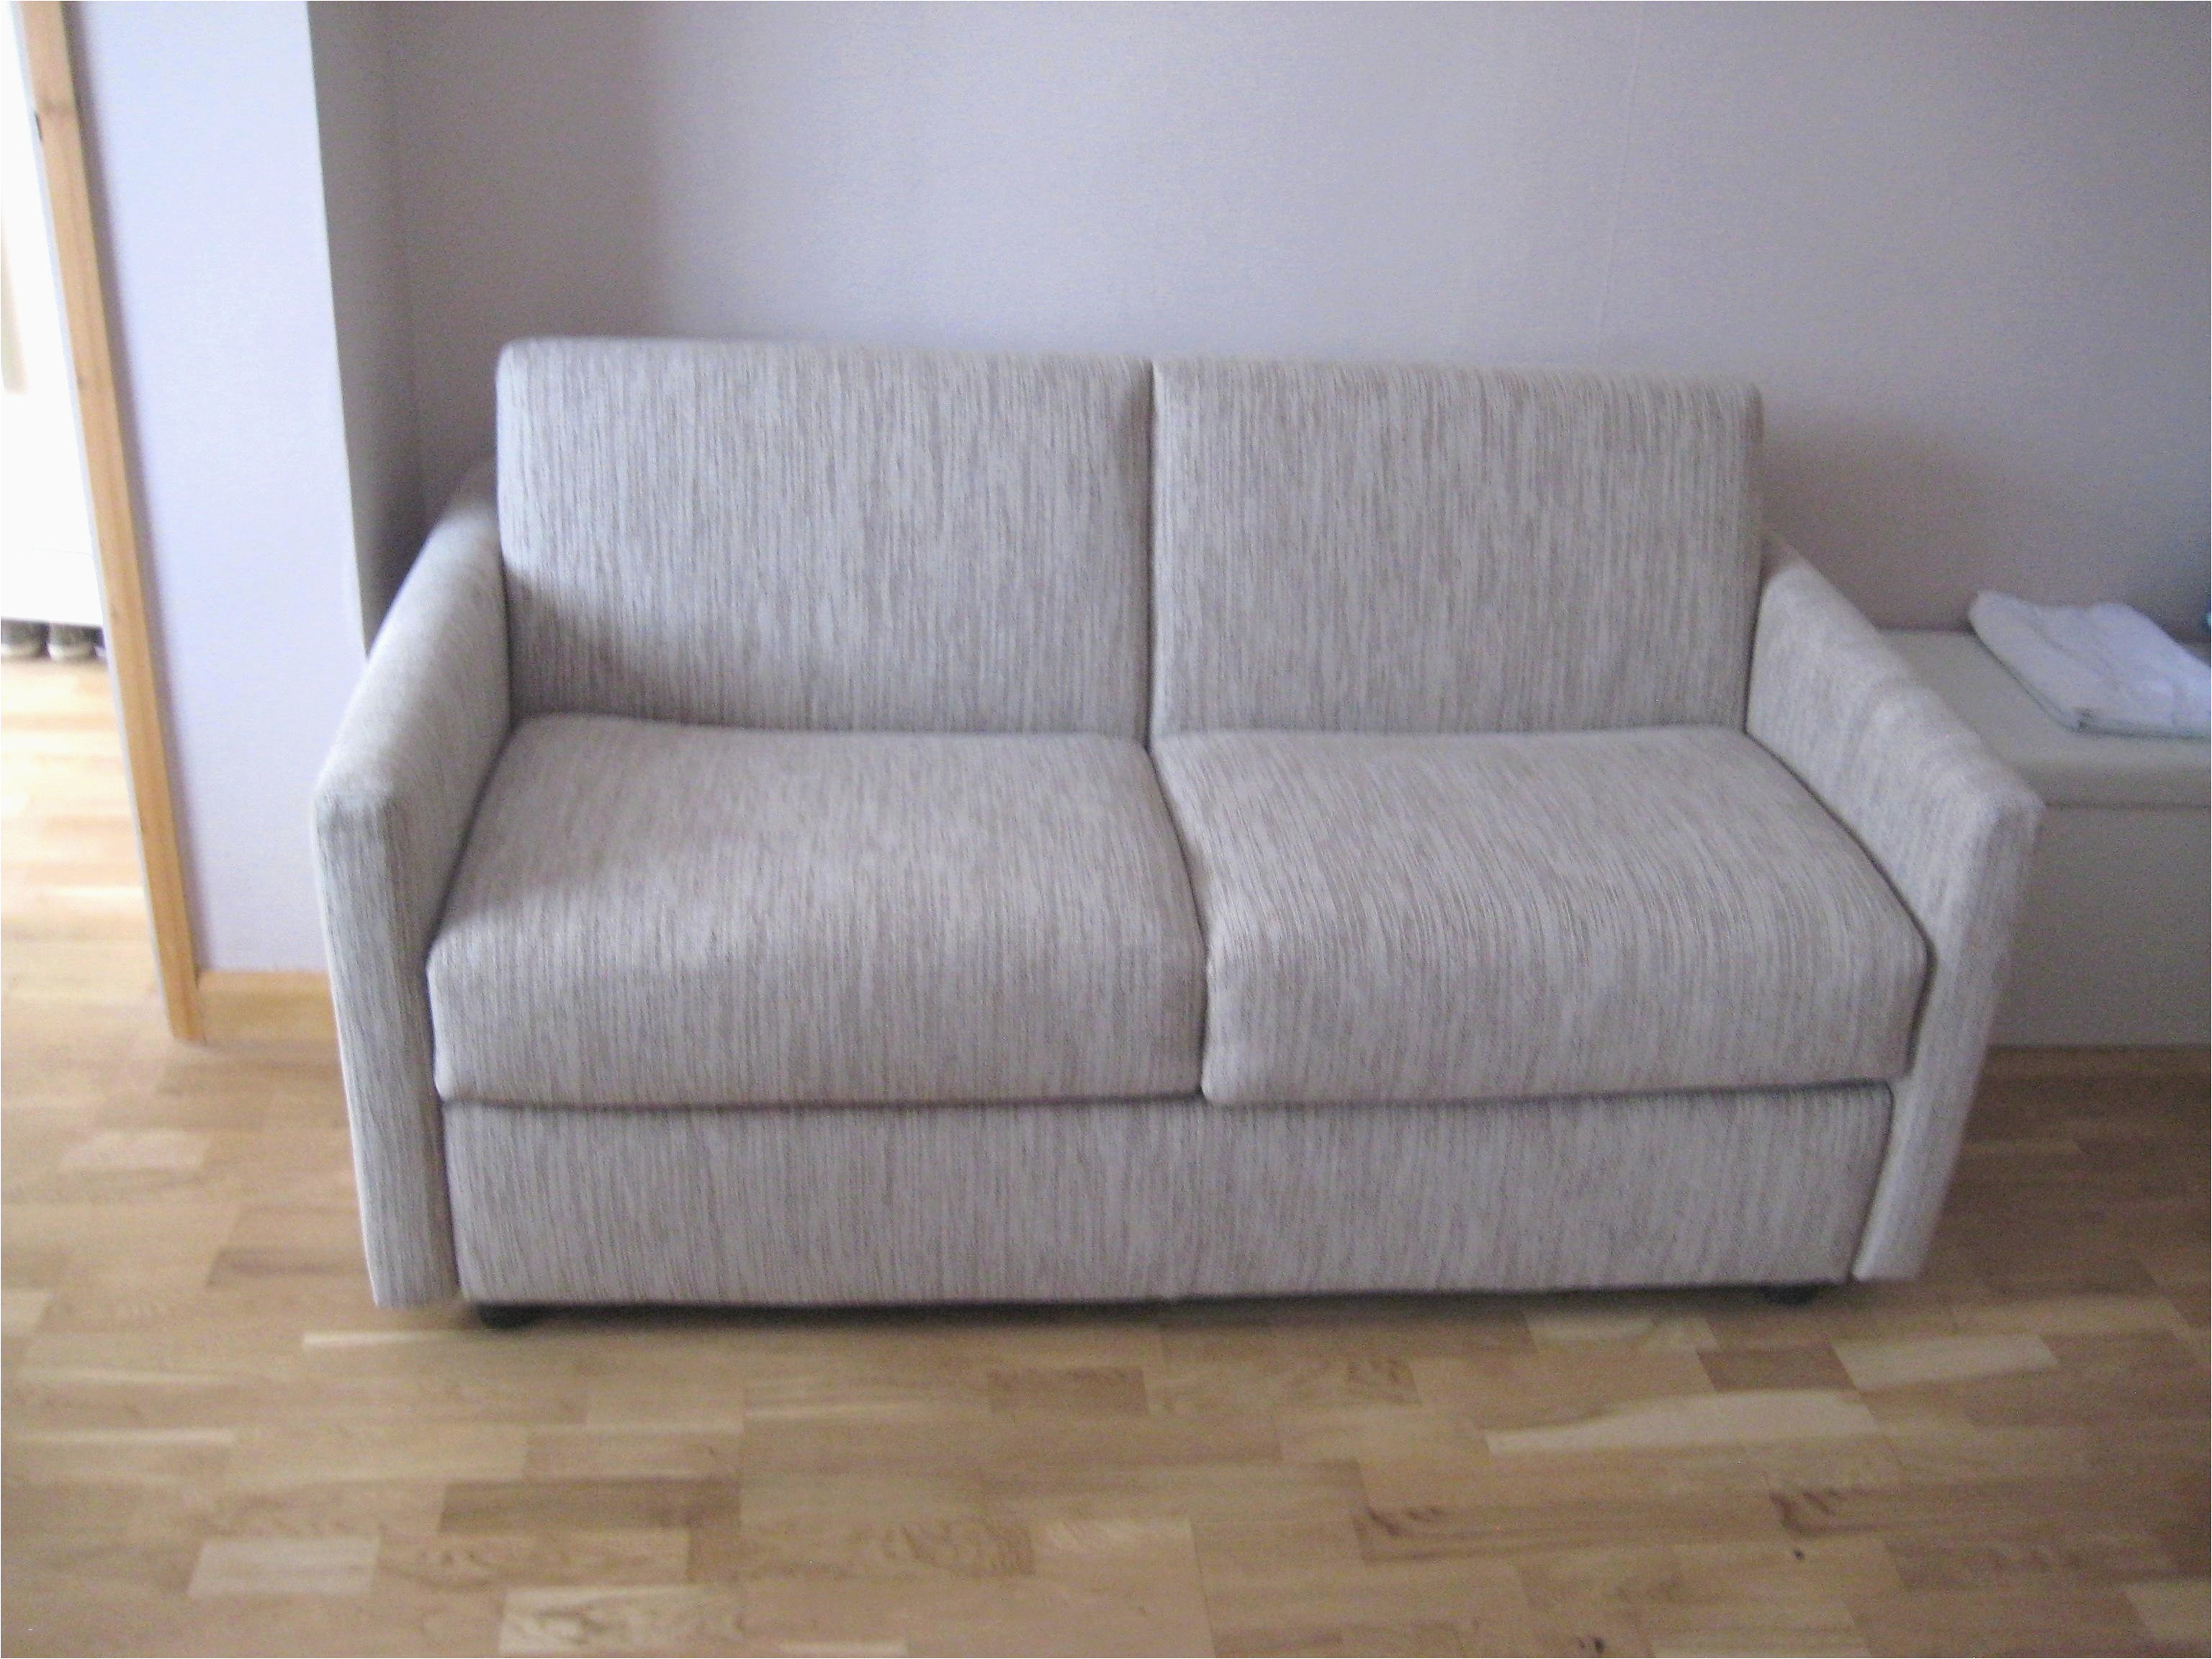 Solsta Sleeper sofa Review Ikea Schlafsofa solsta Inspirierend 26 Lovely solsta Sleeper sofa